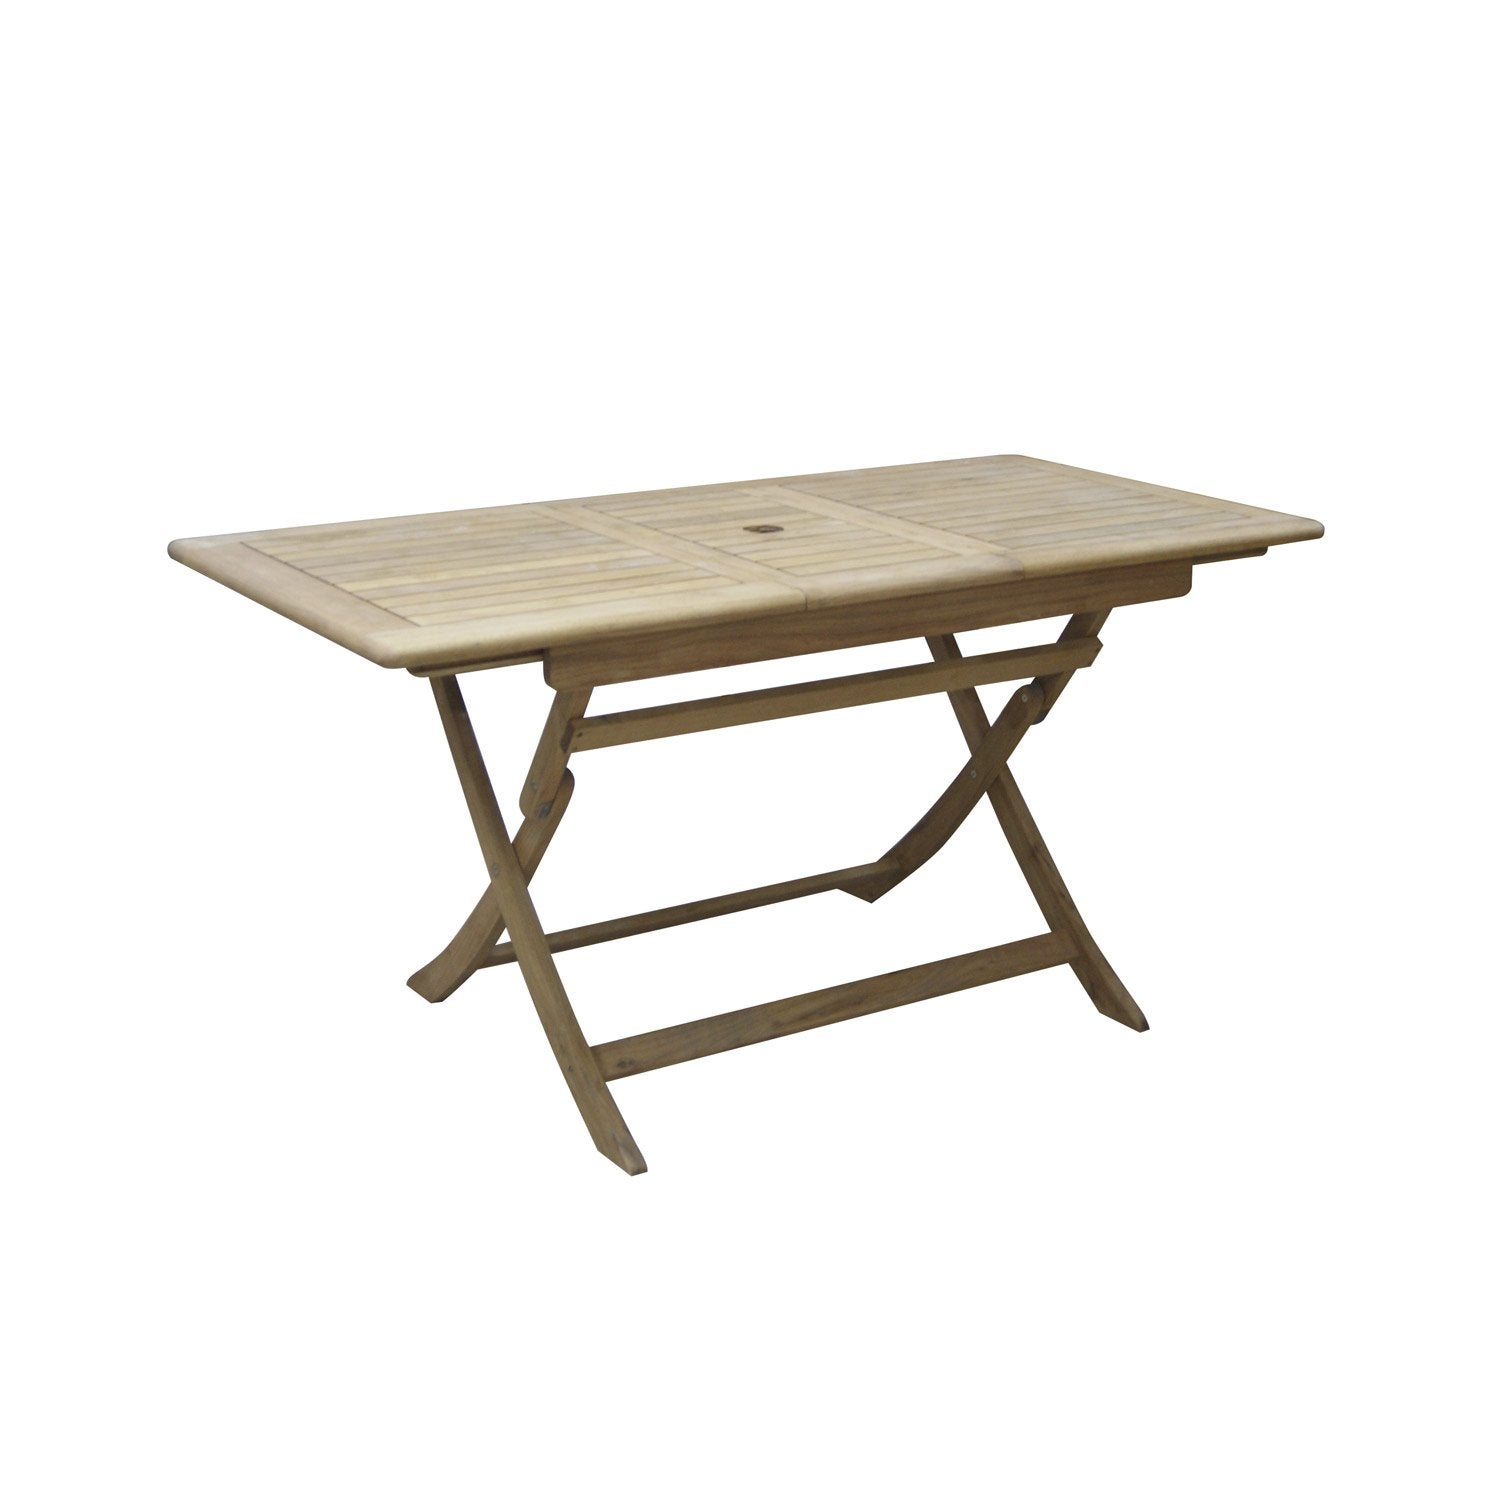 Extension de table de jardin rectangulaire robin naterial leroy merlin - Table de jardin ronde robin naterial ...